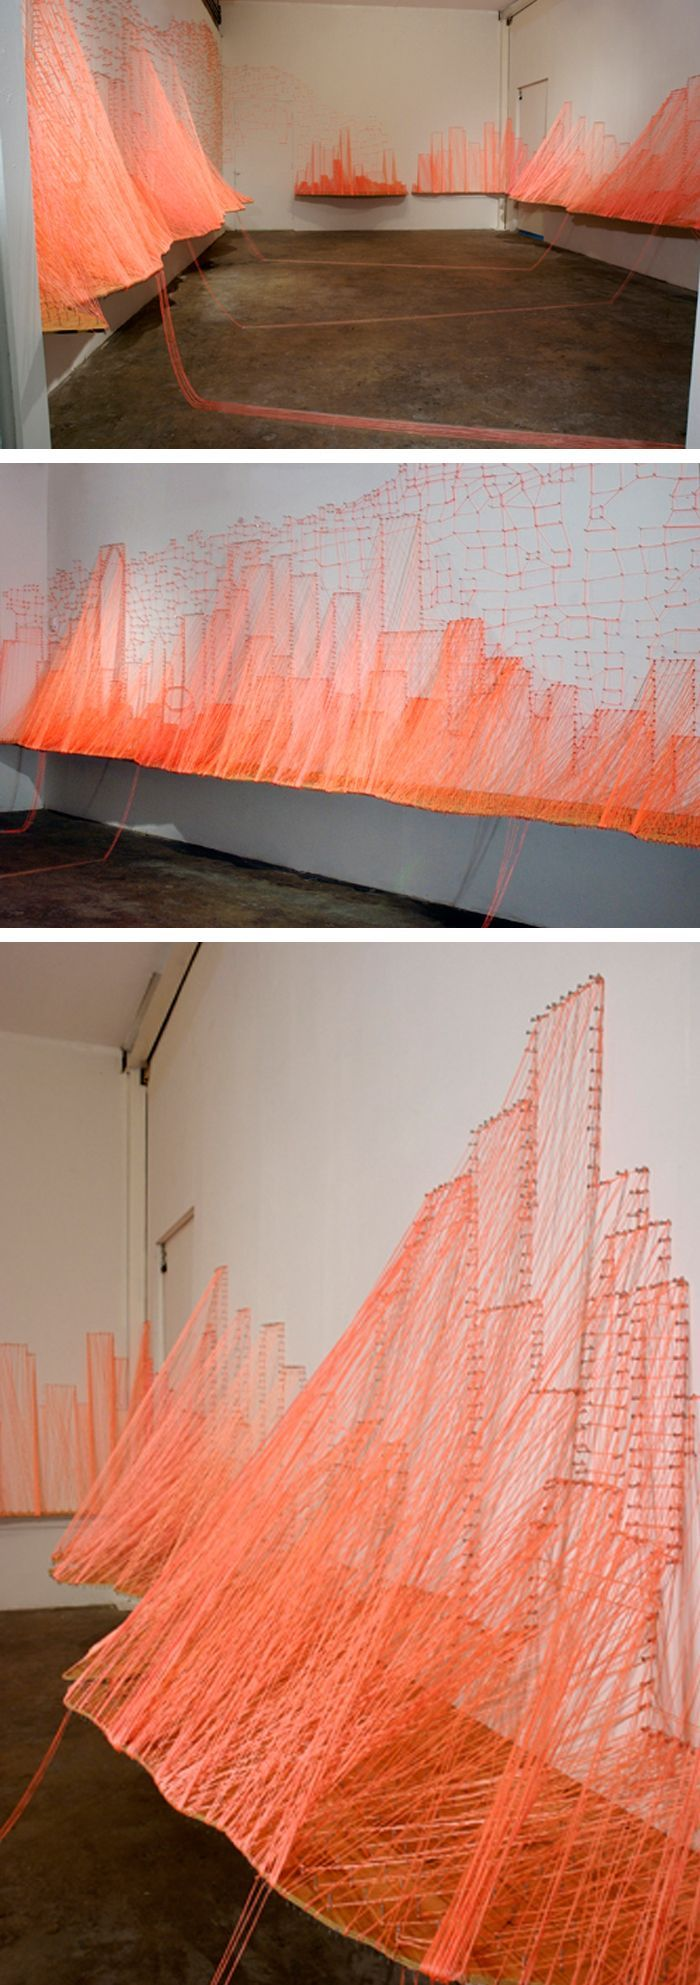 pINTEREST @Benningboy95            Aili Schmeltz - The Magic City String Art Installation